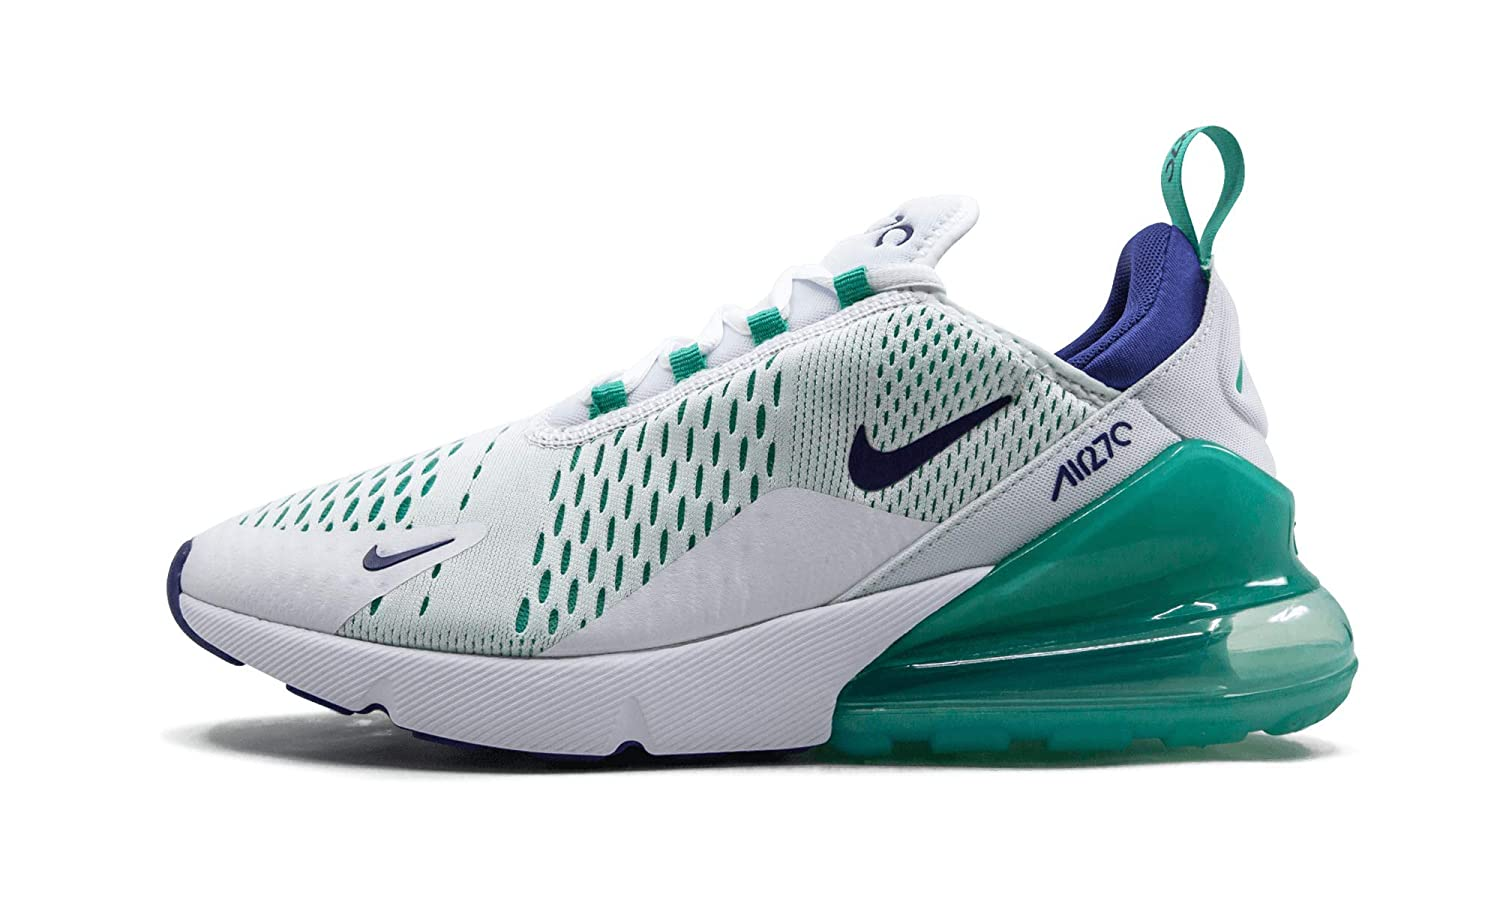 buy popular 13bba c75d3 Amazon.com | Nike Air Max 270 (White/Hyper Jade, 9.5) | Shoes